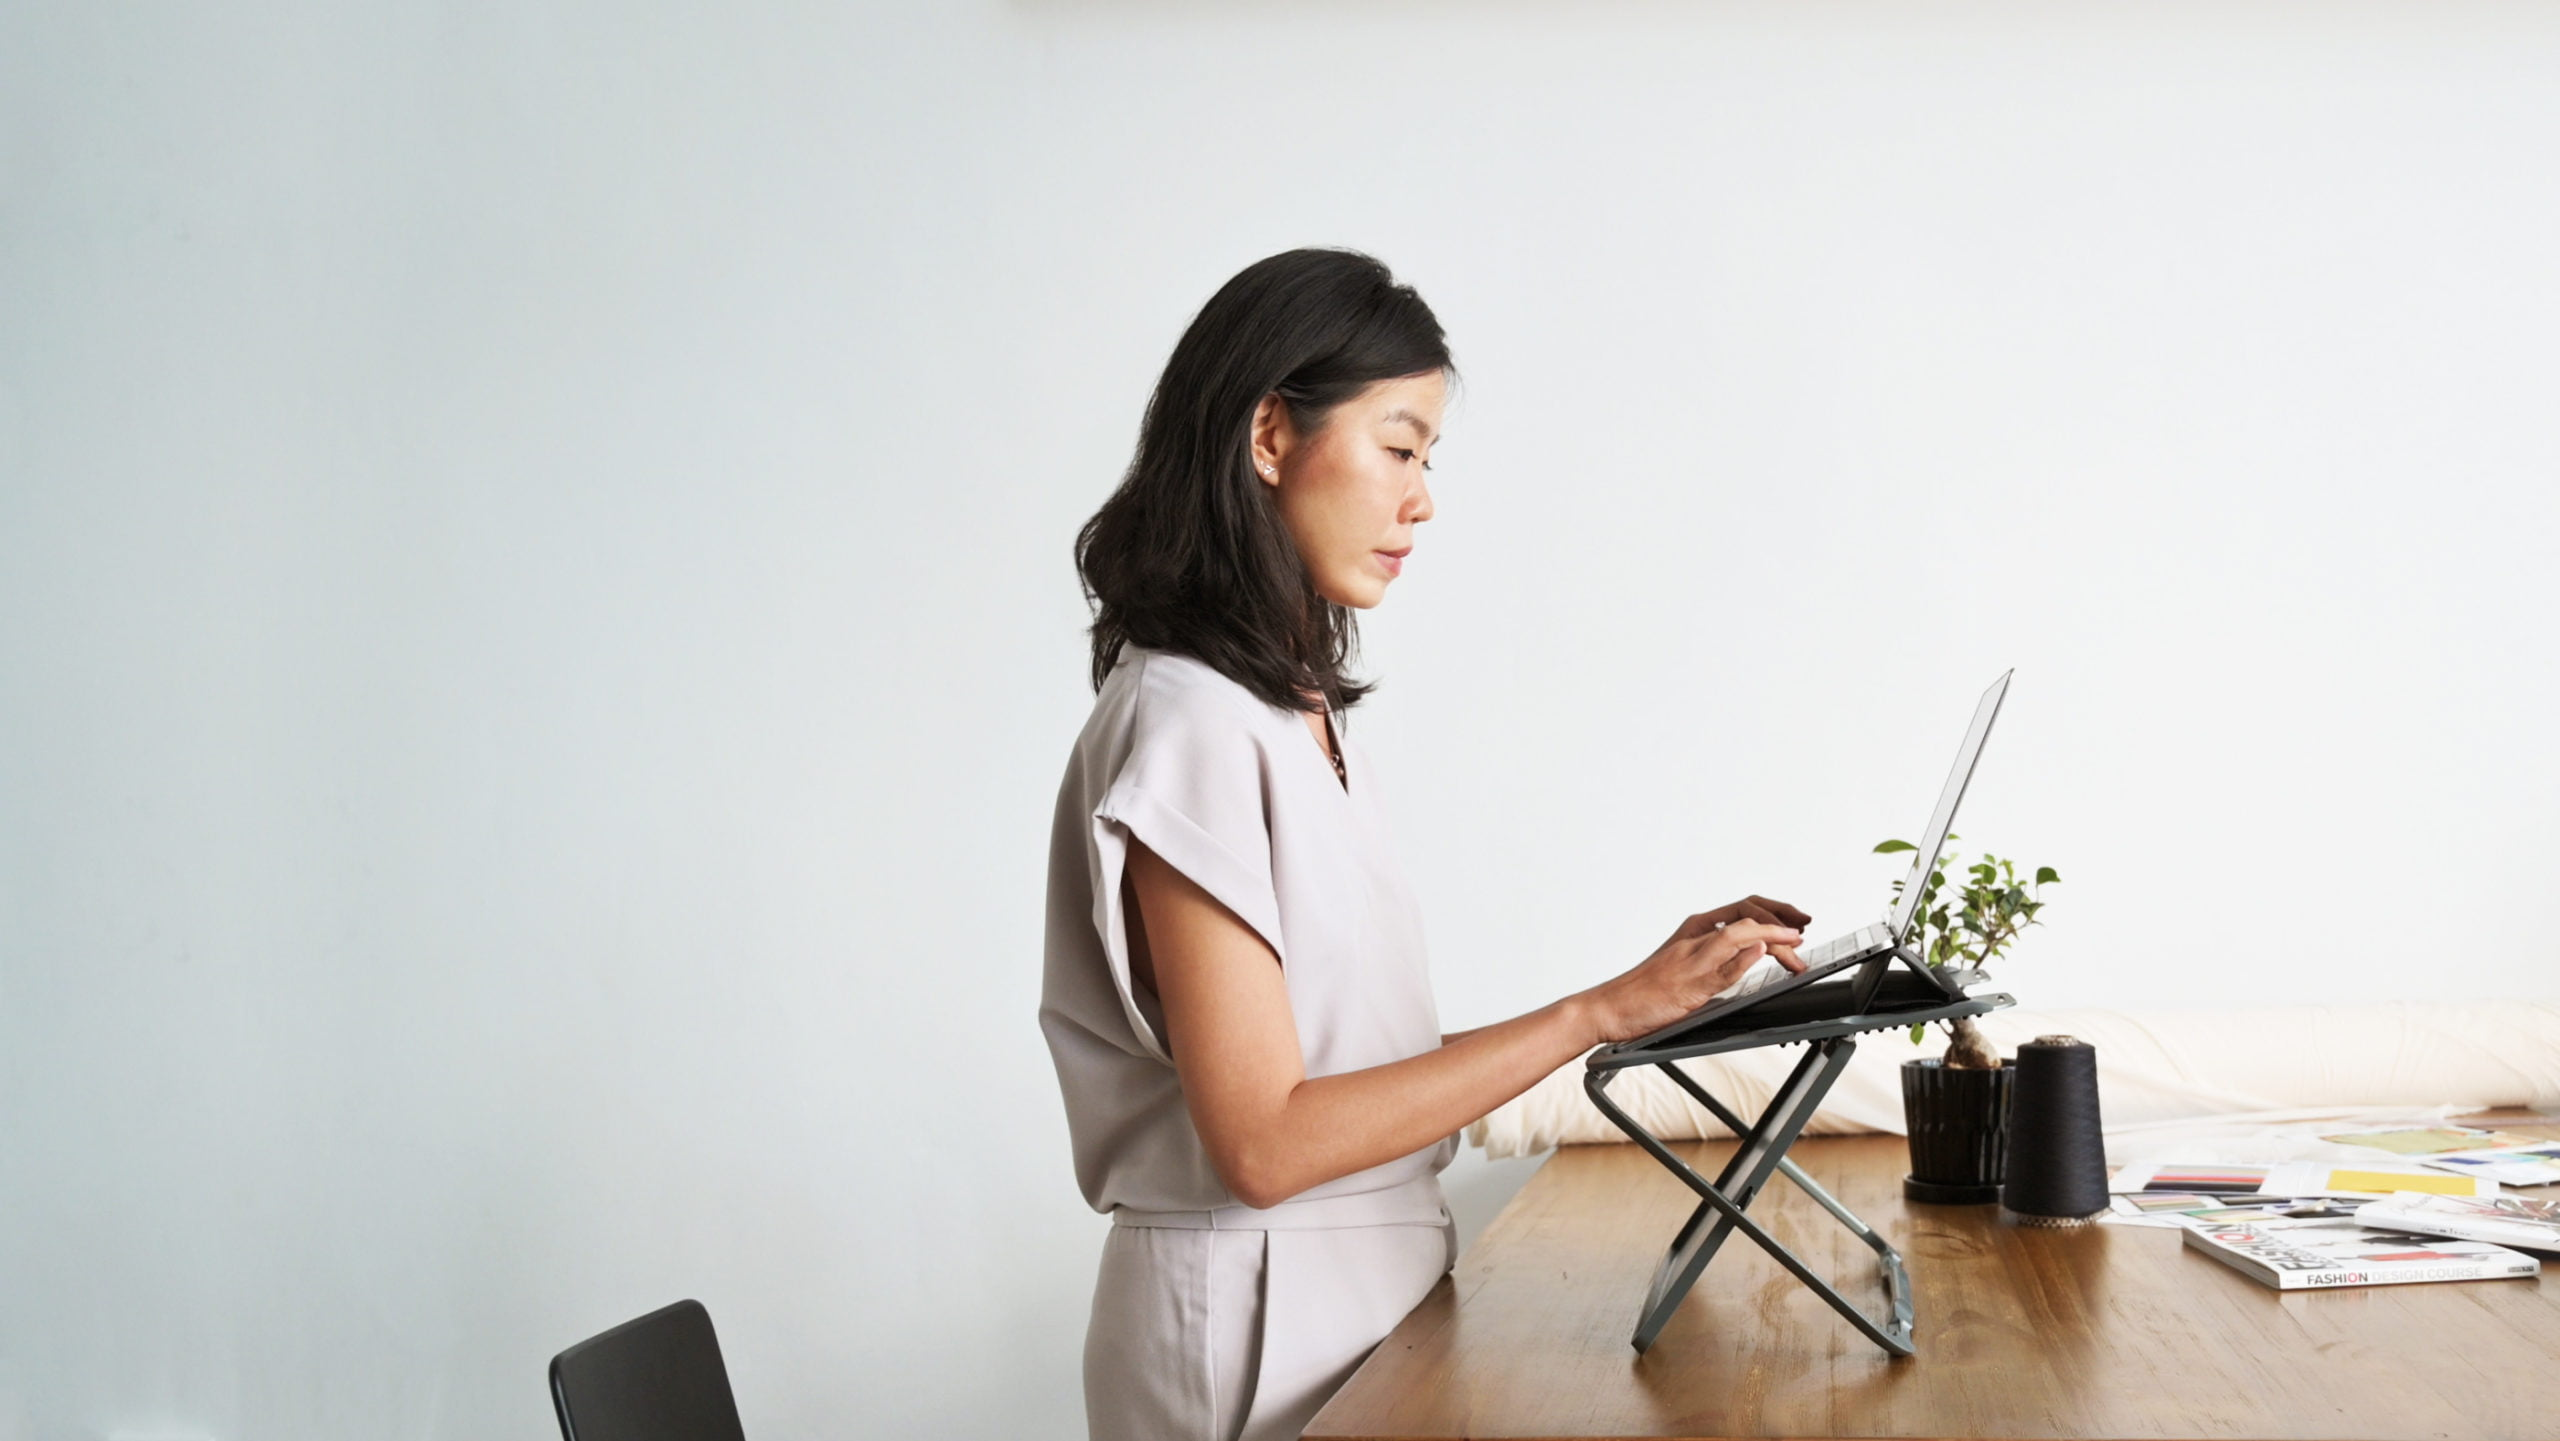 Redefining the Workspace in 2020 With Rizr – the World's First 2-in-1 Portable Standing Desk and Laptop Case